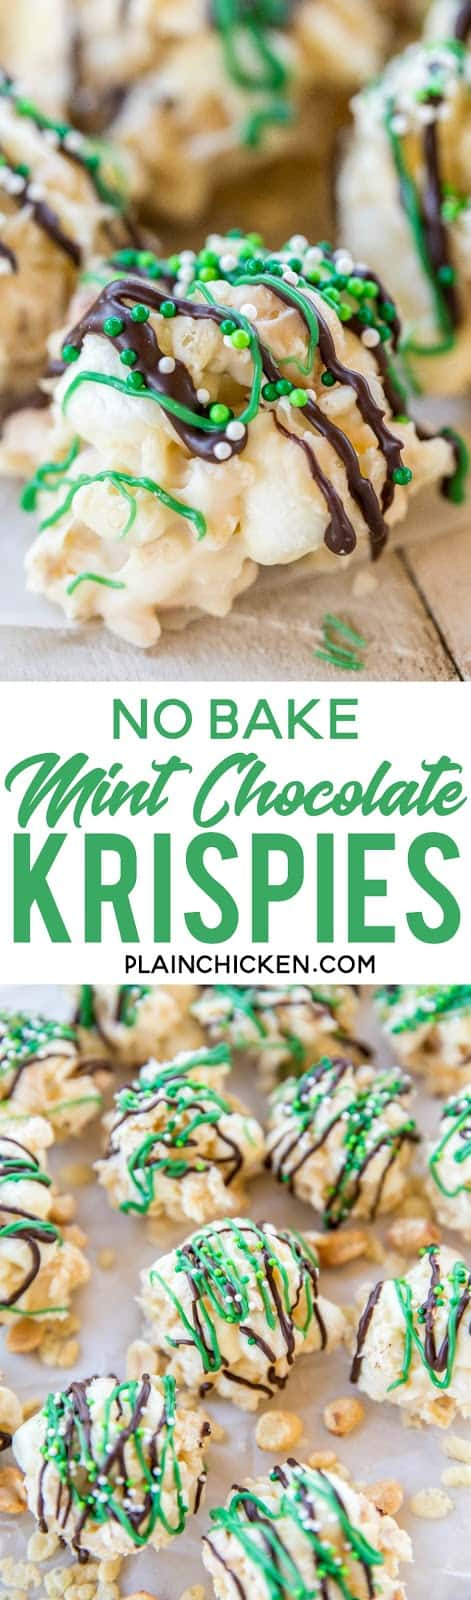 No-Bake Mint Chocolate Krispies - only 5 ingredients and 5 minutes! These are dangerously delicious! Drizzle with melted chocolate and green candy melts for a festive St. Patrick's Day treat!! Almond bark, peppermint oil, rice krispies, peanuts and marshmallows. #nobake #stpatricksday #candy #easydessert